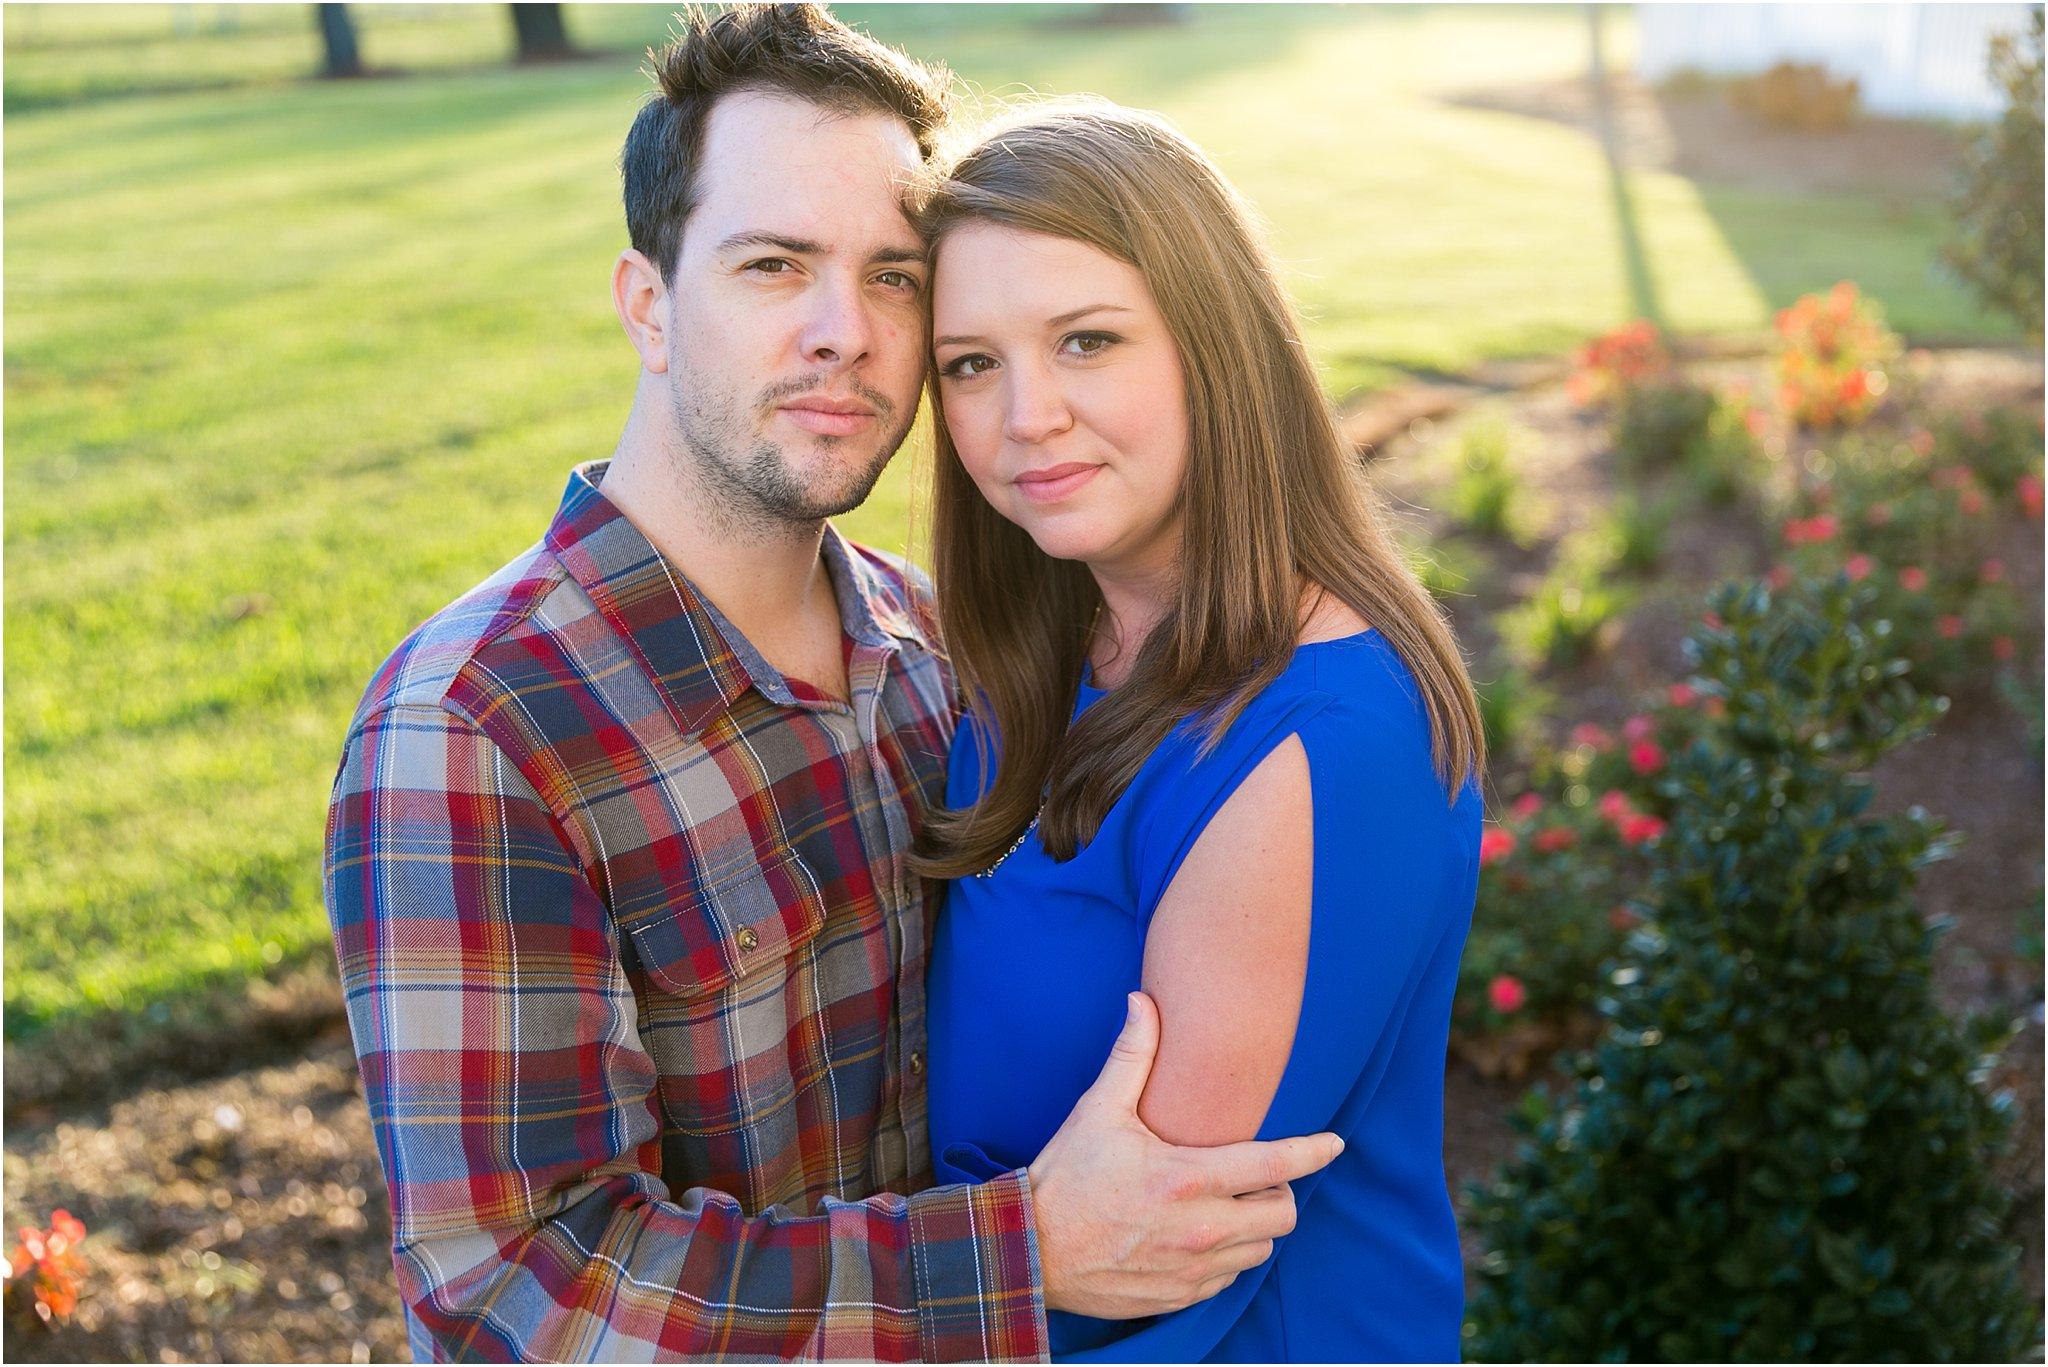 jessica_ryan_photography_virginia_beach_holly_ridge_manor_engagements_1010